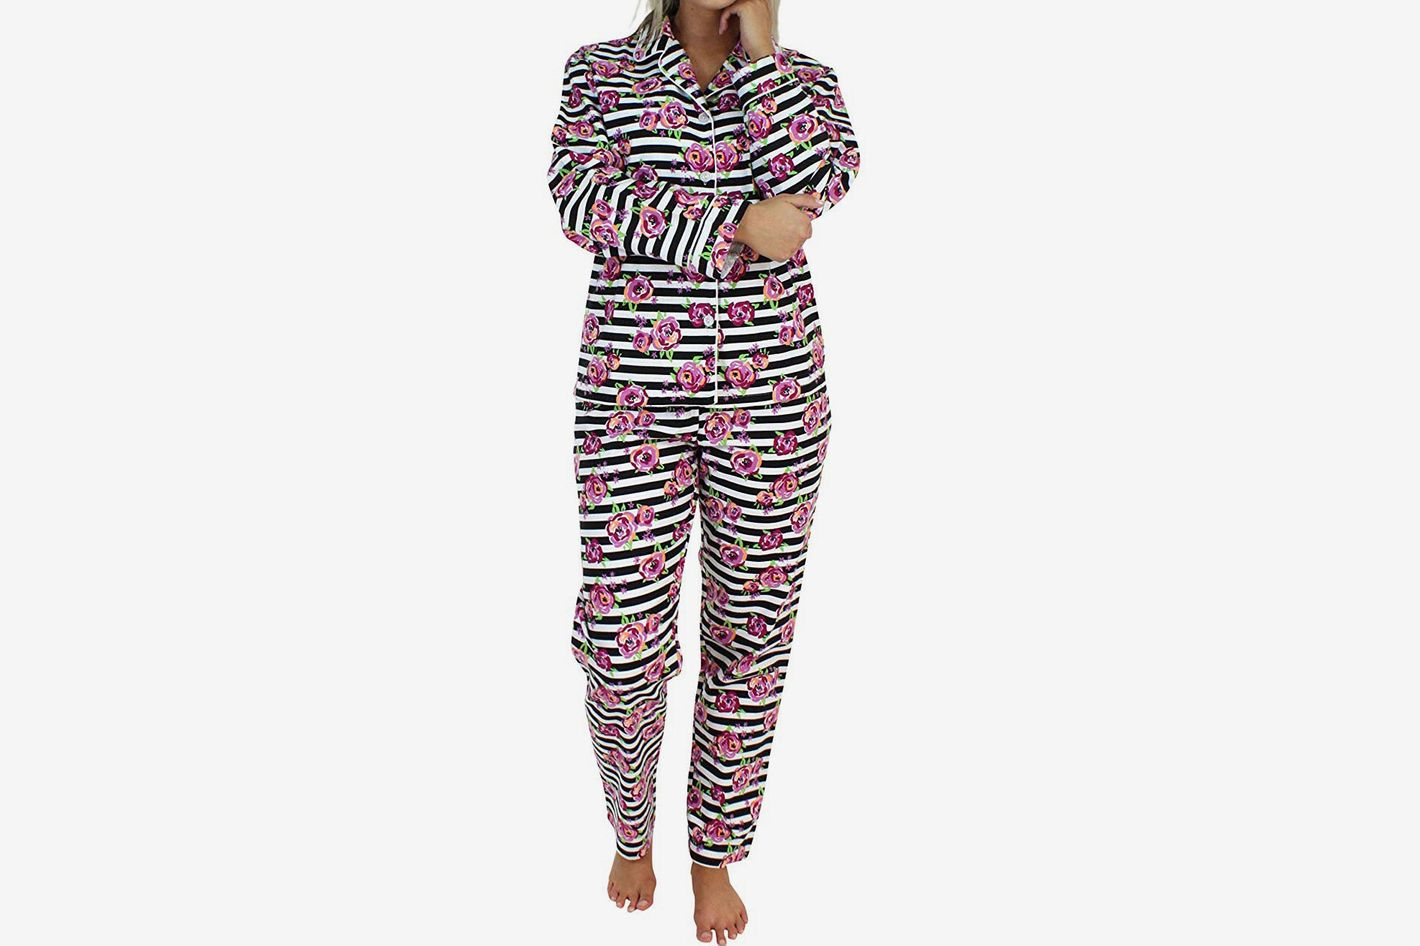 ac1e19ffae9d PajamaMania Women s Sleepwear Flannel Long Sleeve Pajamas